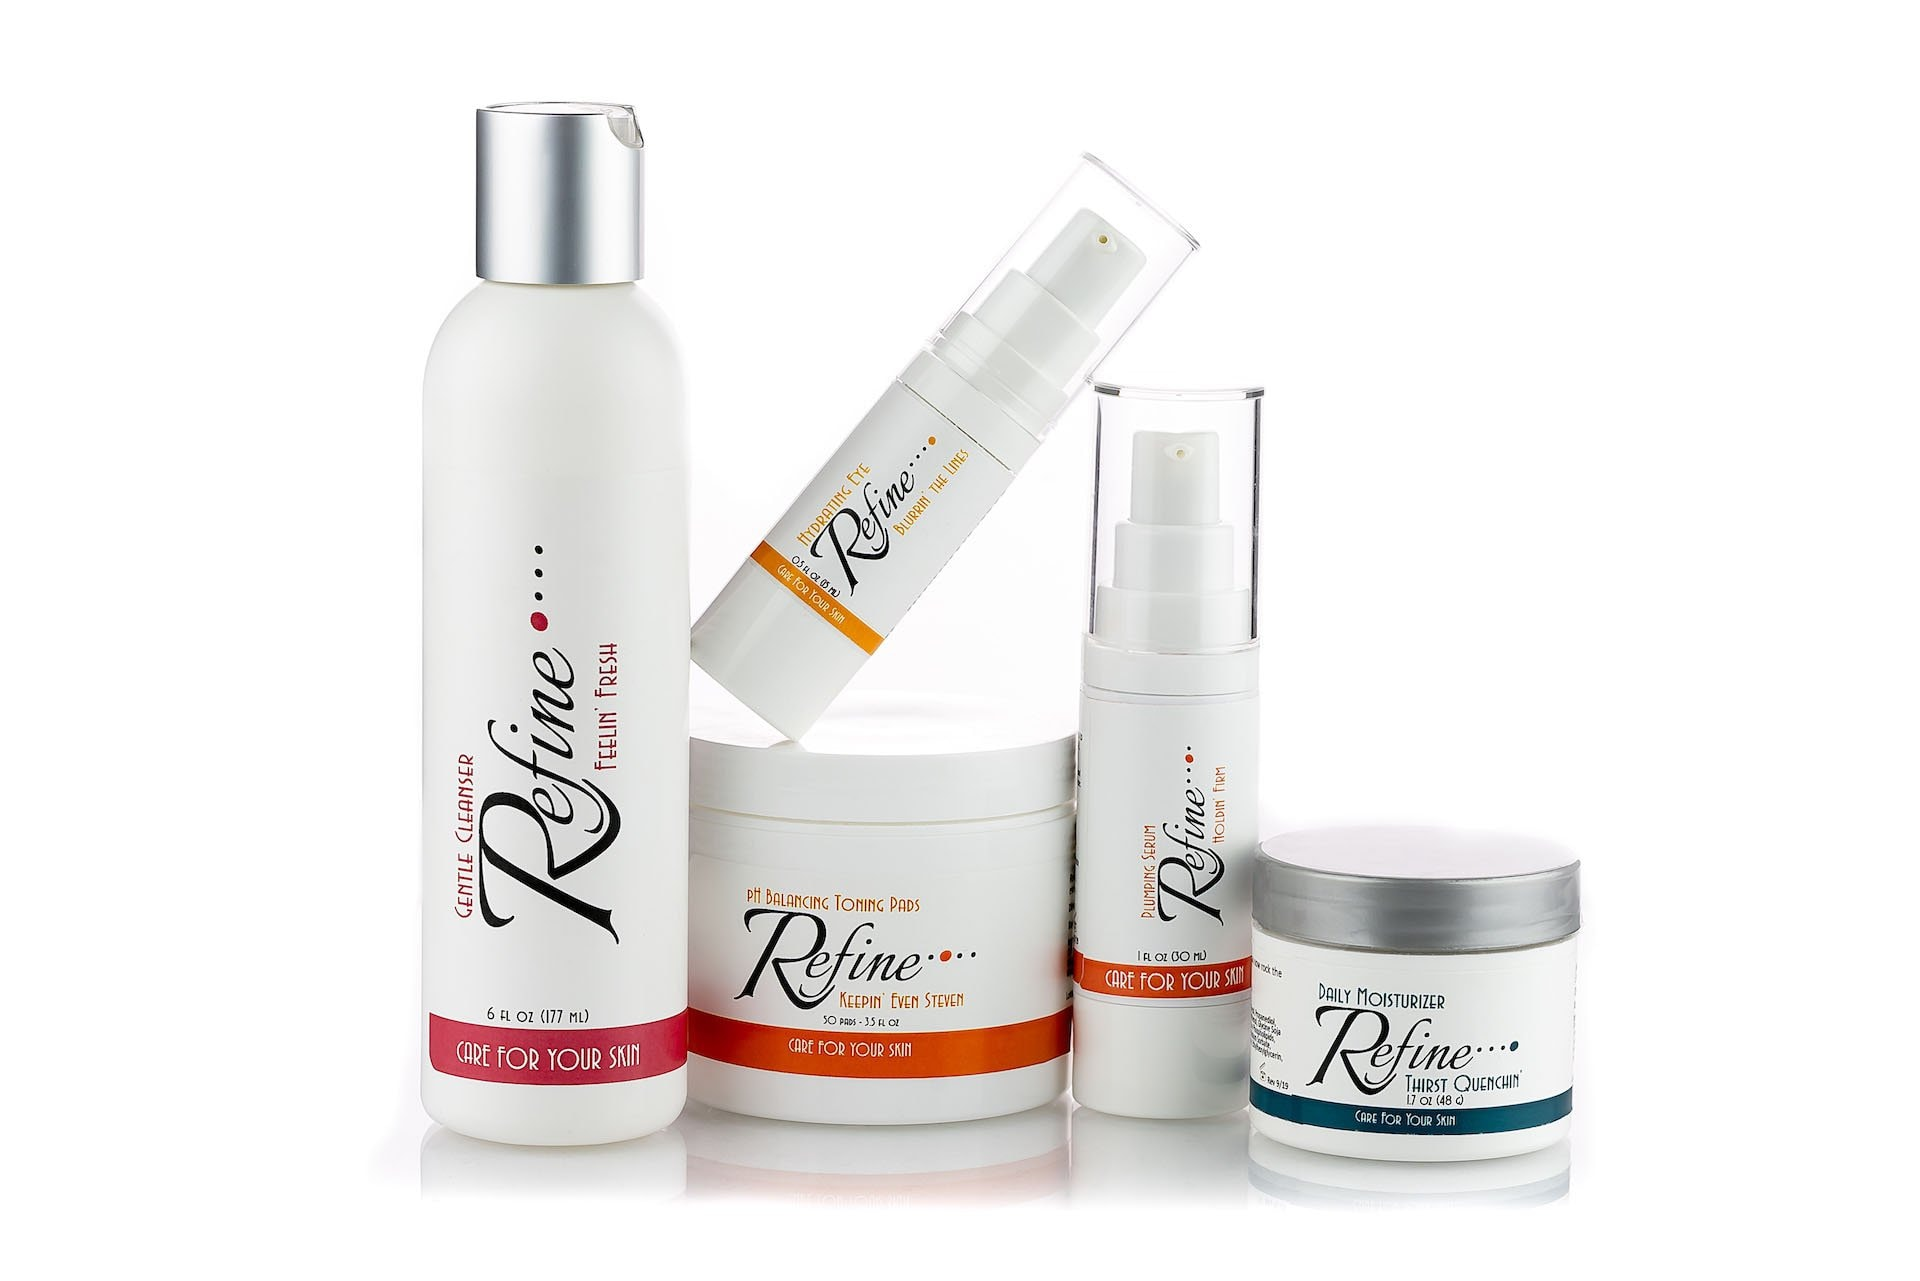 refine product features